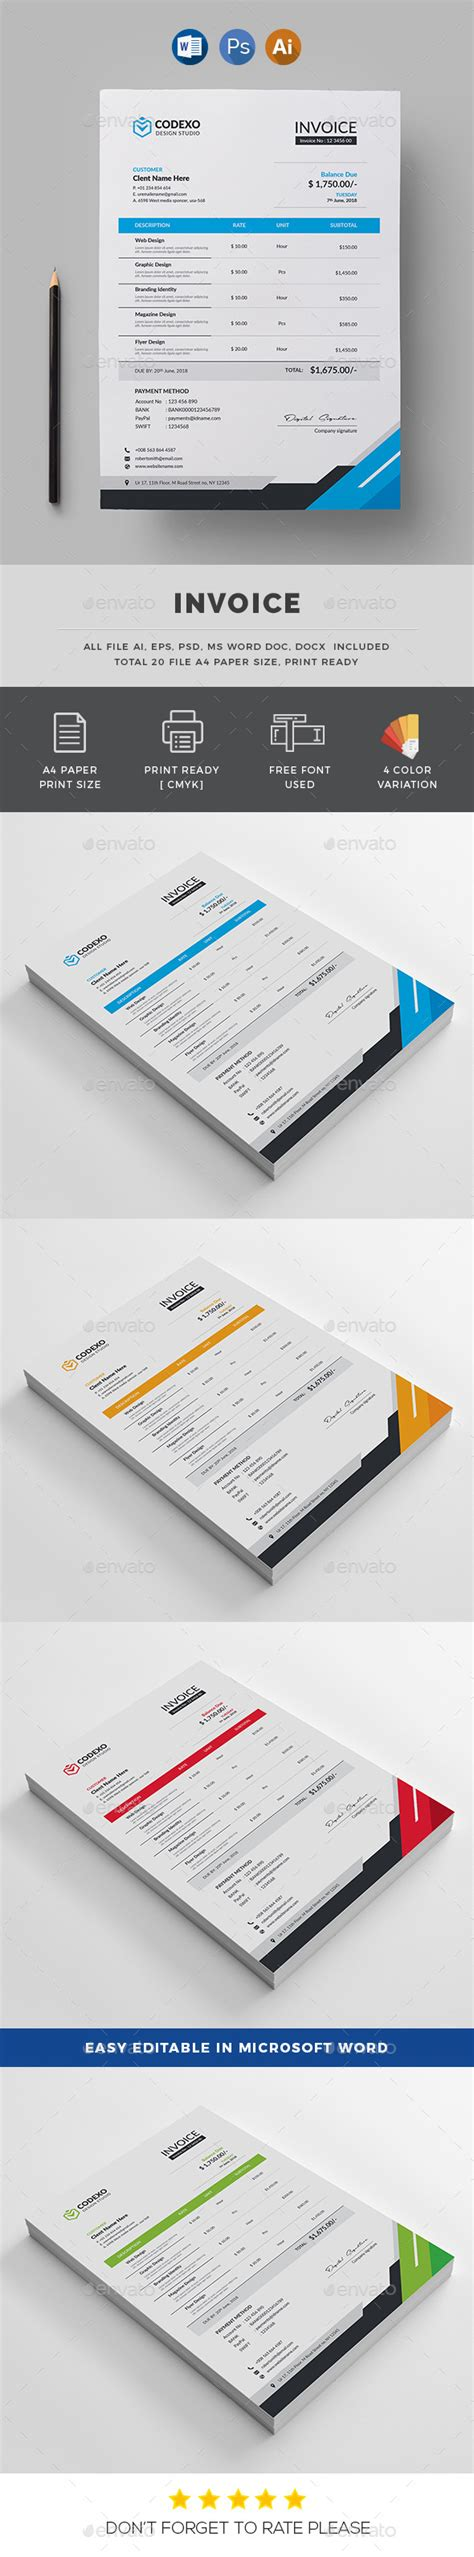 graphic design invoice template illustrator 187 tinkytyler